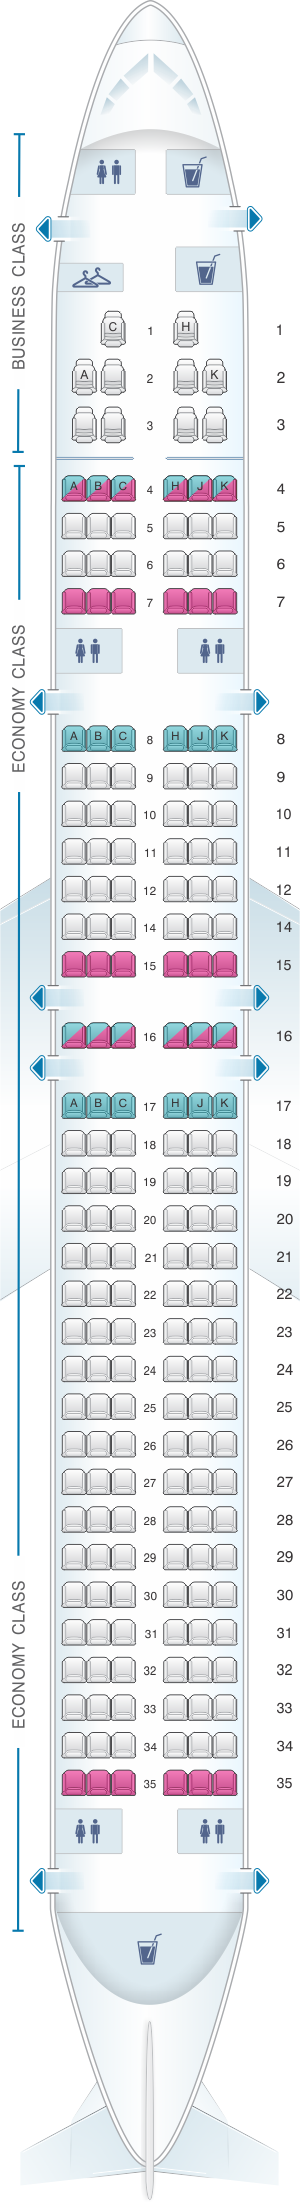 Seat map for Blue Panorama Boeing B757 200